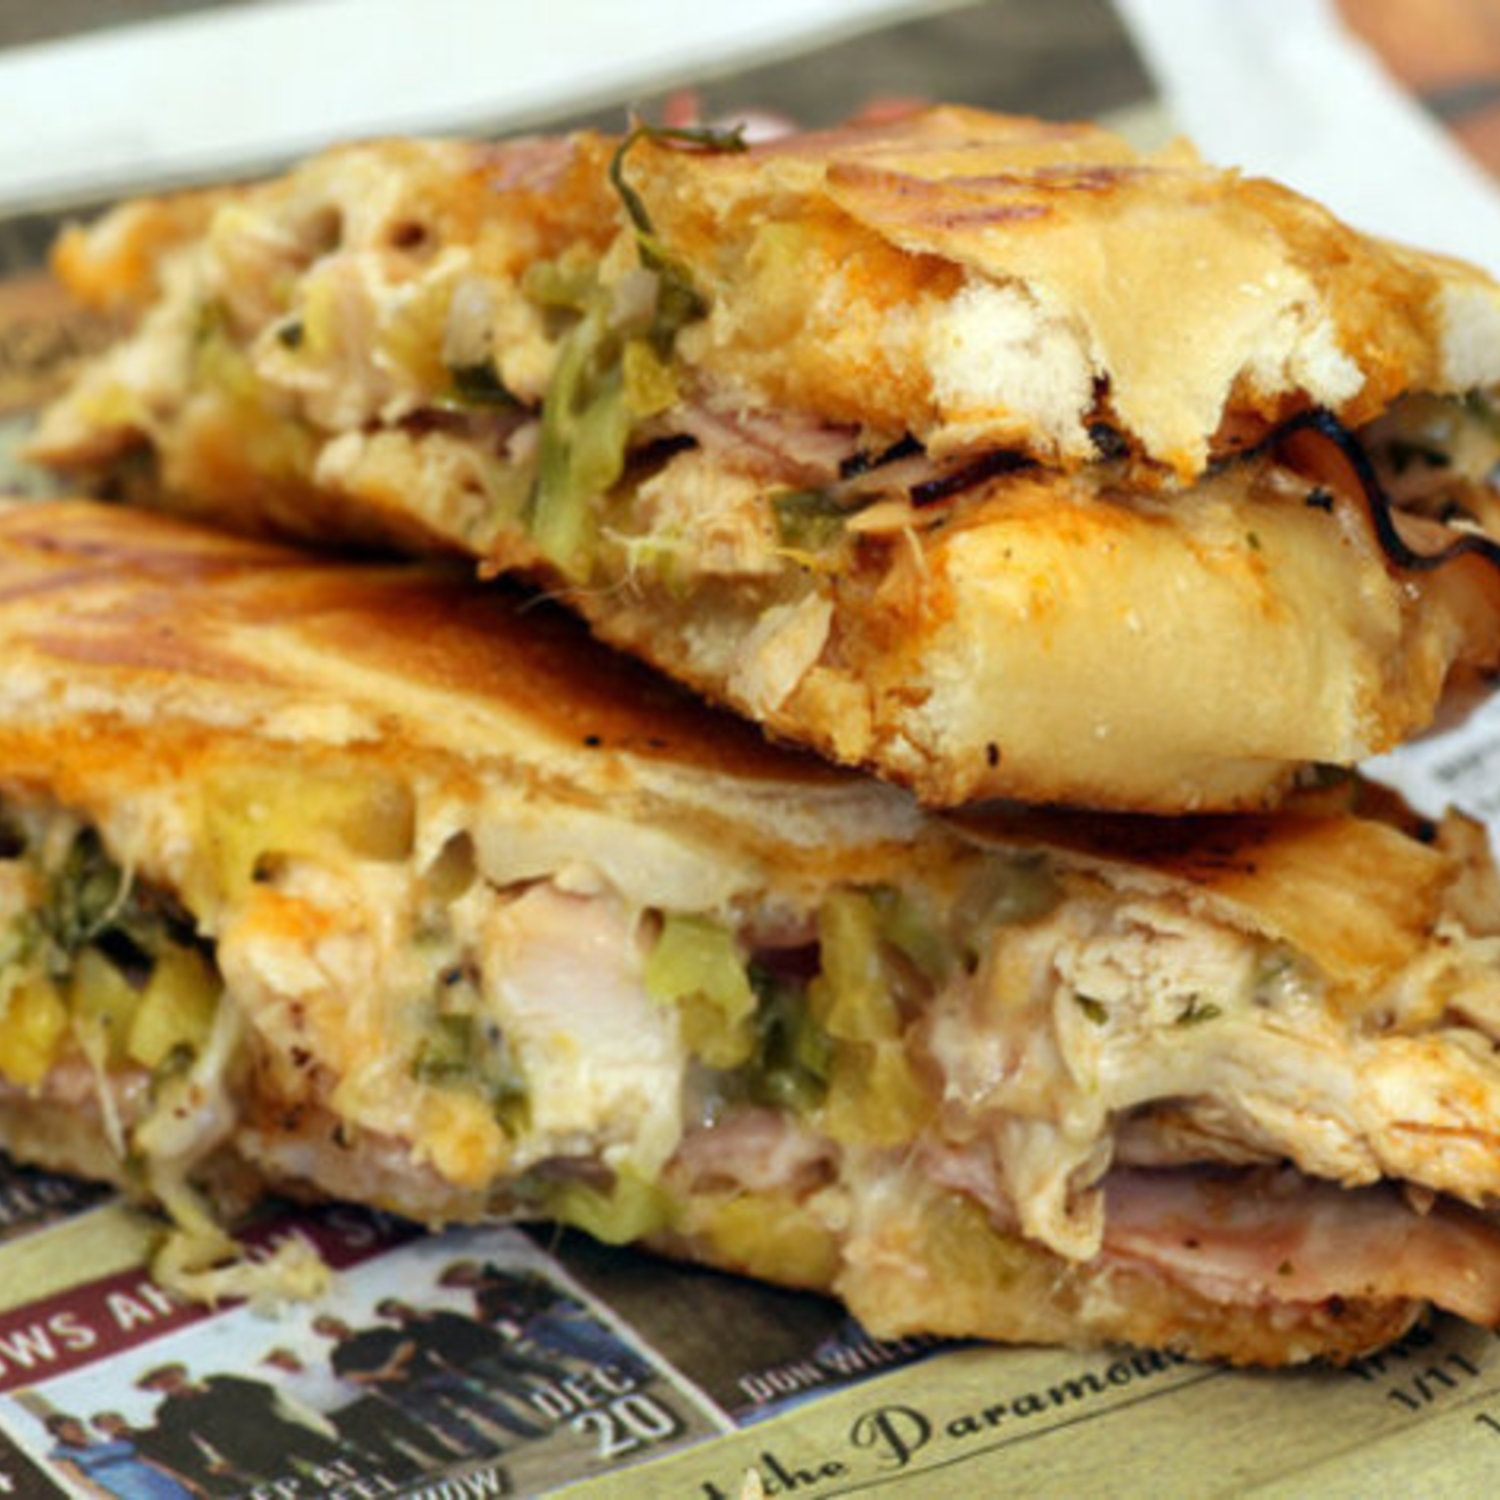 Cuban Sandwich with Mojo Sauce If made right, this is my favorite ... major